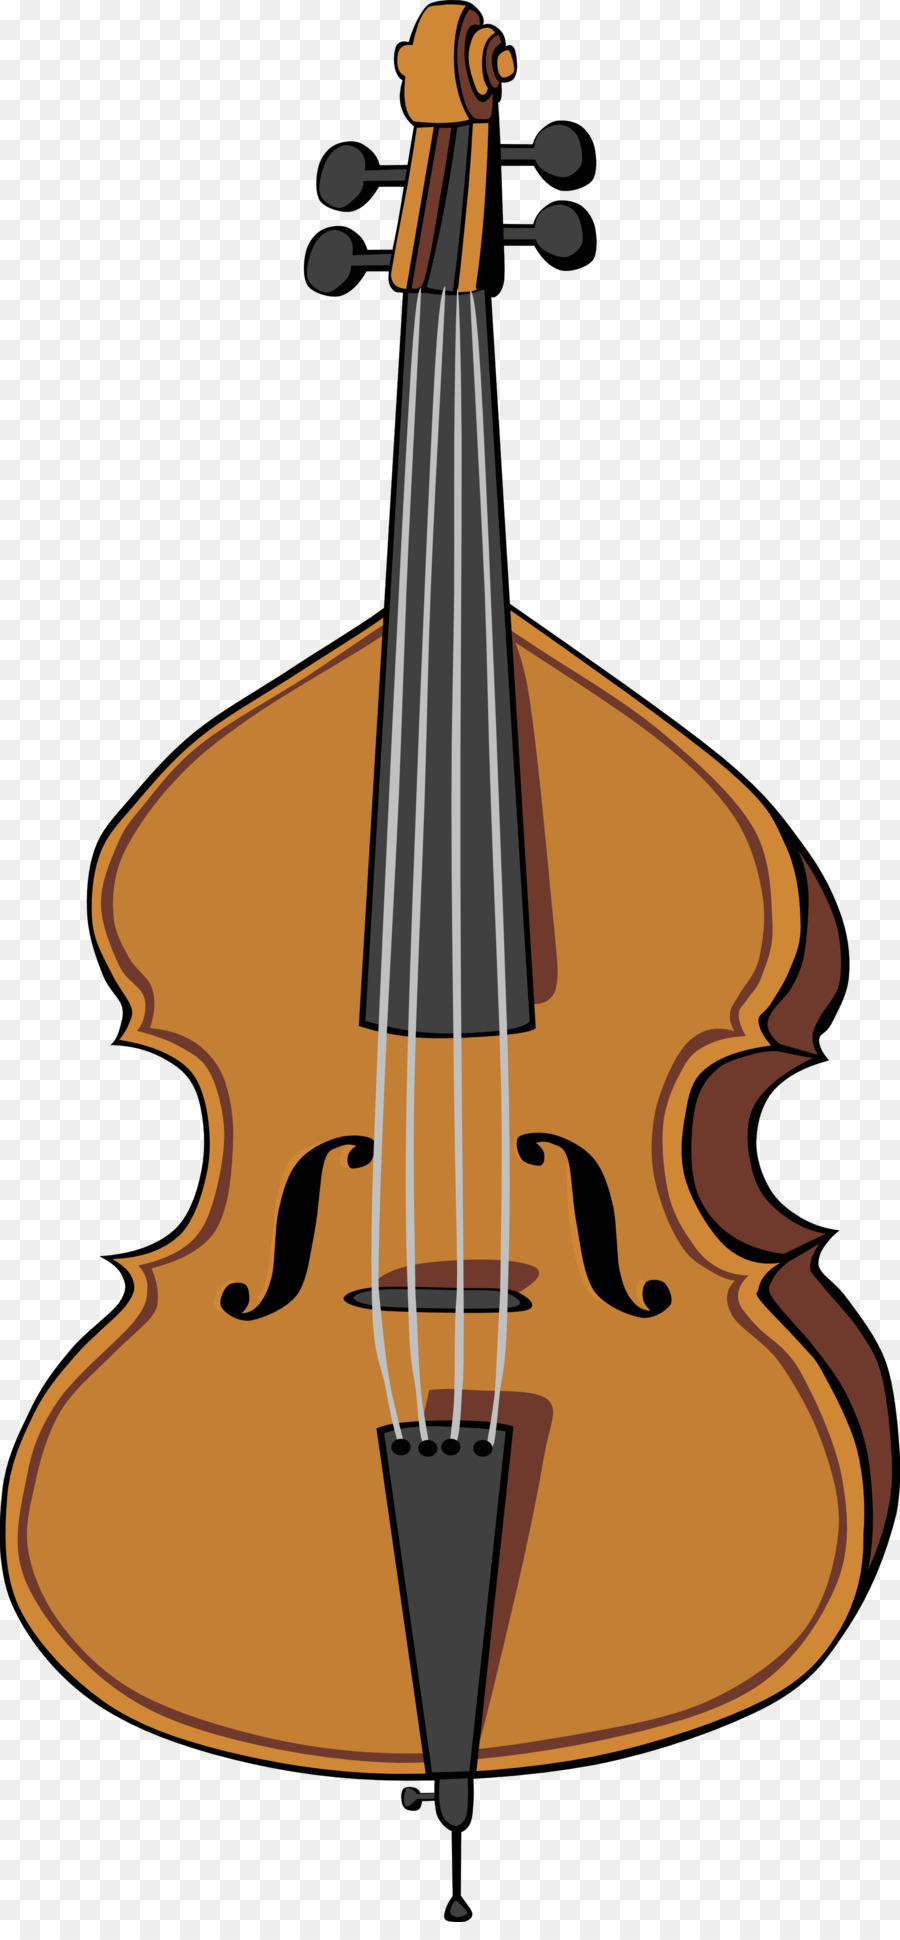 Cello clipart string bass. Violin cellist clip art